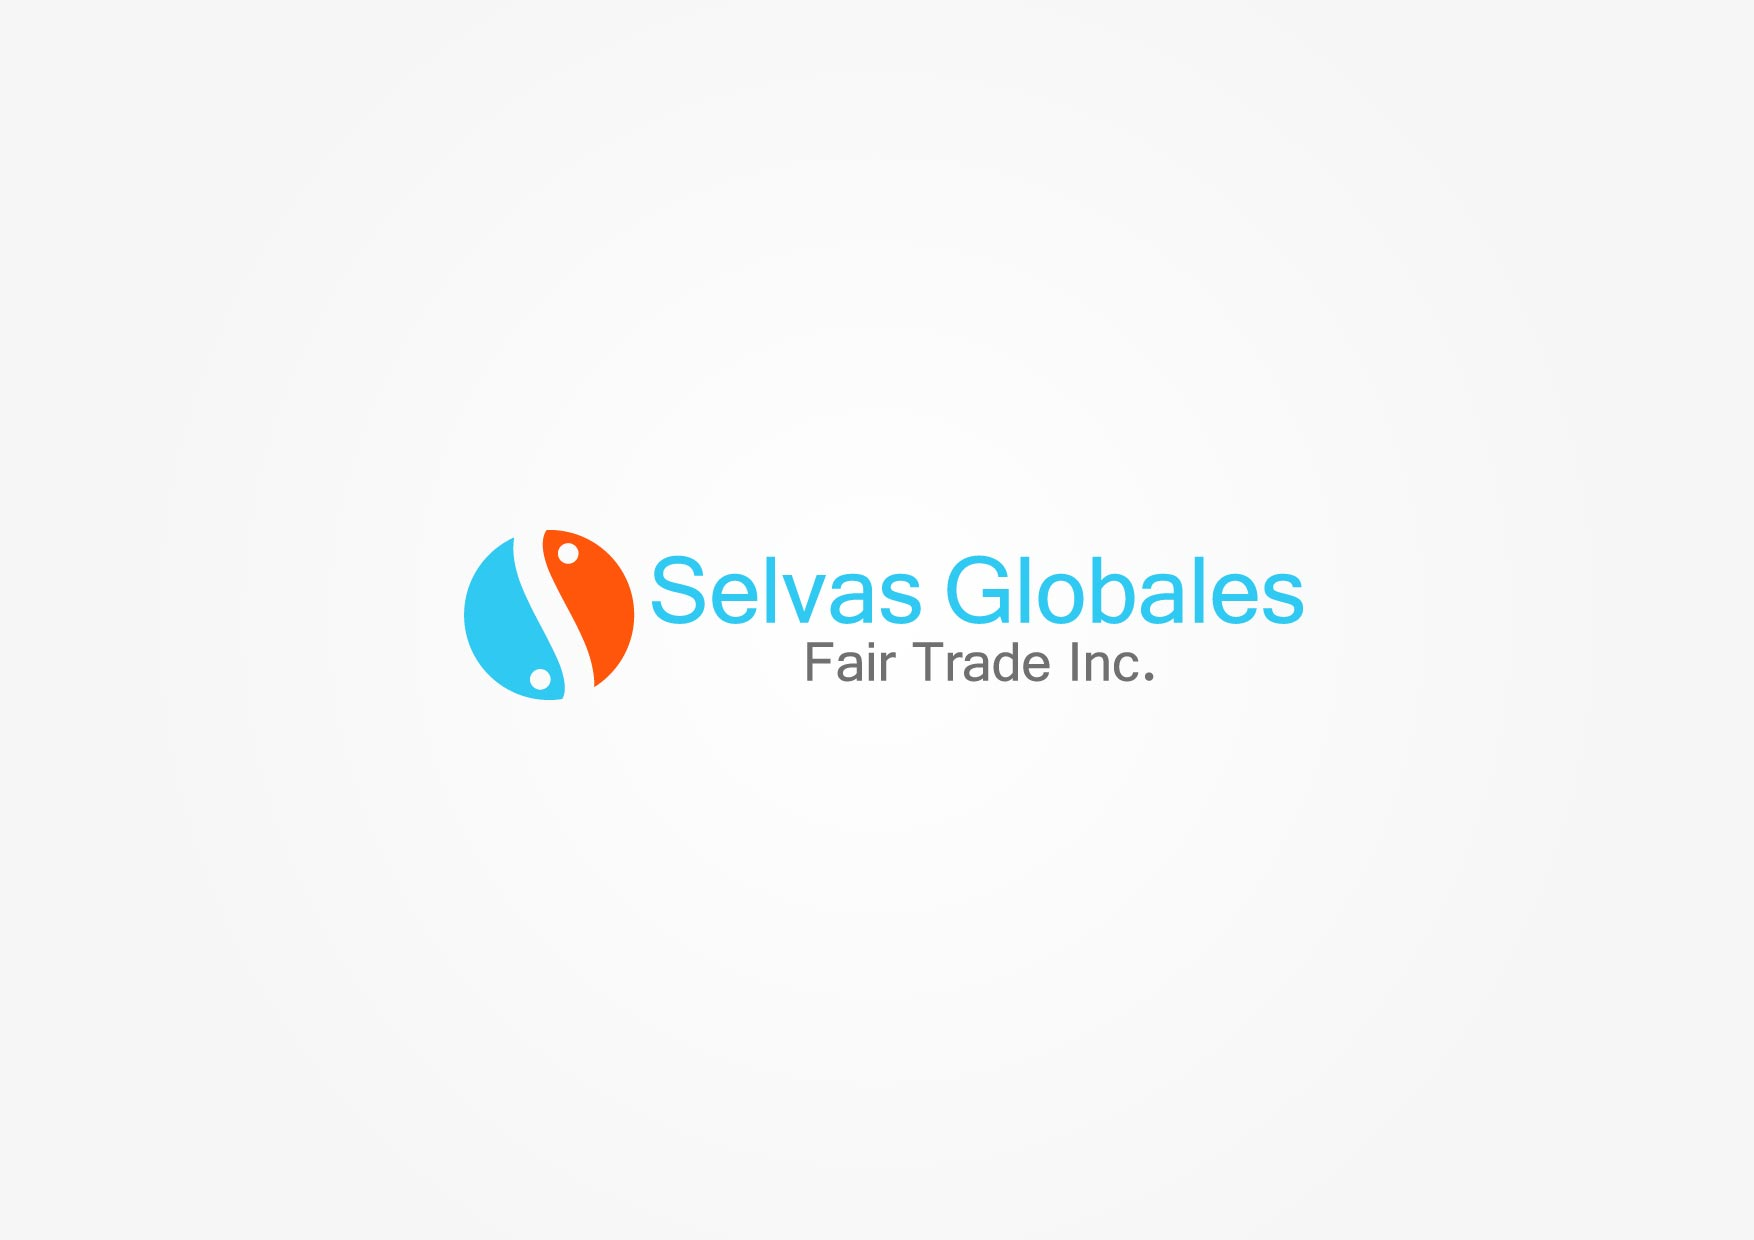 Logo Design by Osi Indra - Entry No. 44 in the Logo Design Contest Captivating Logo Design for Selvas Globales Fair Trade Inc..